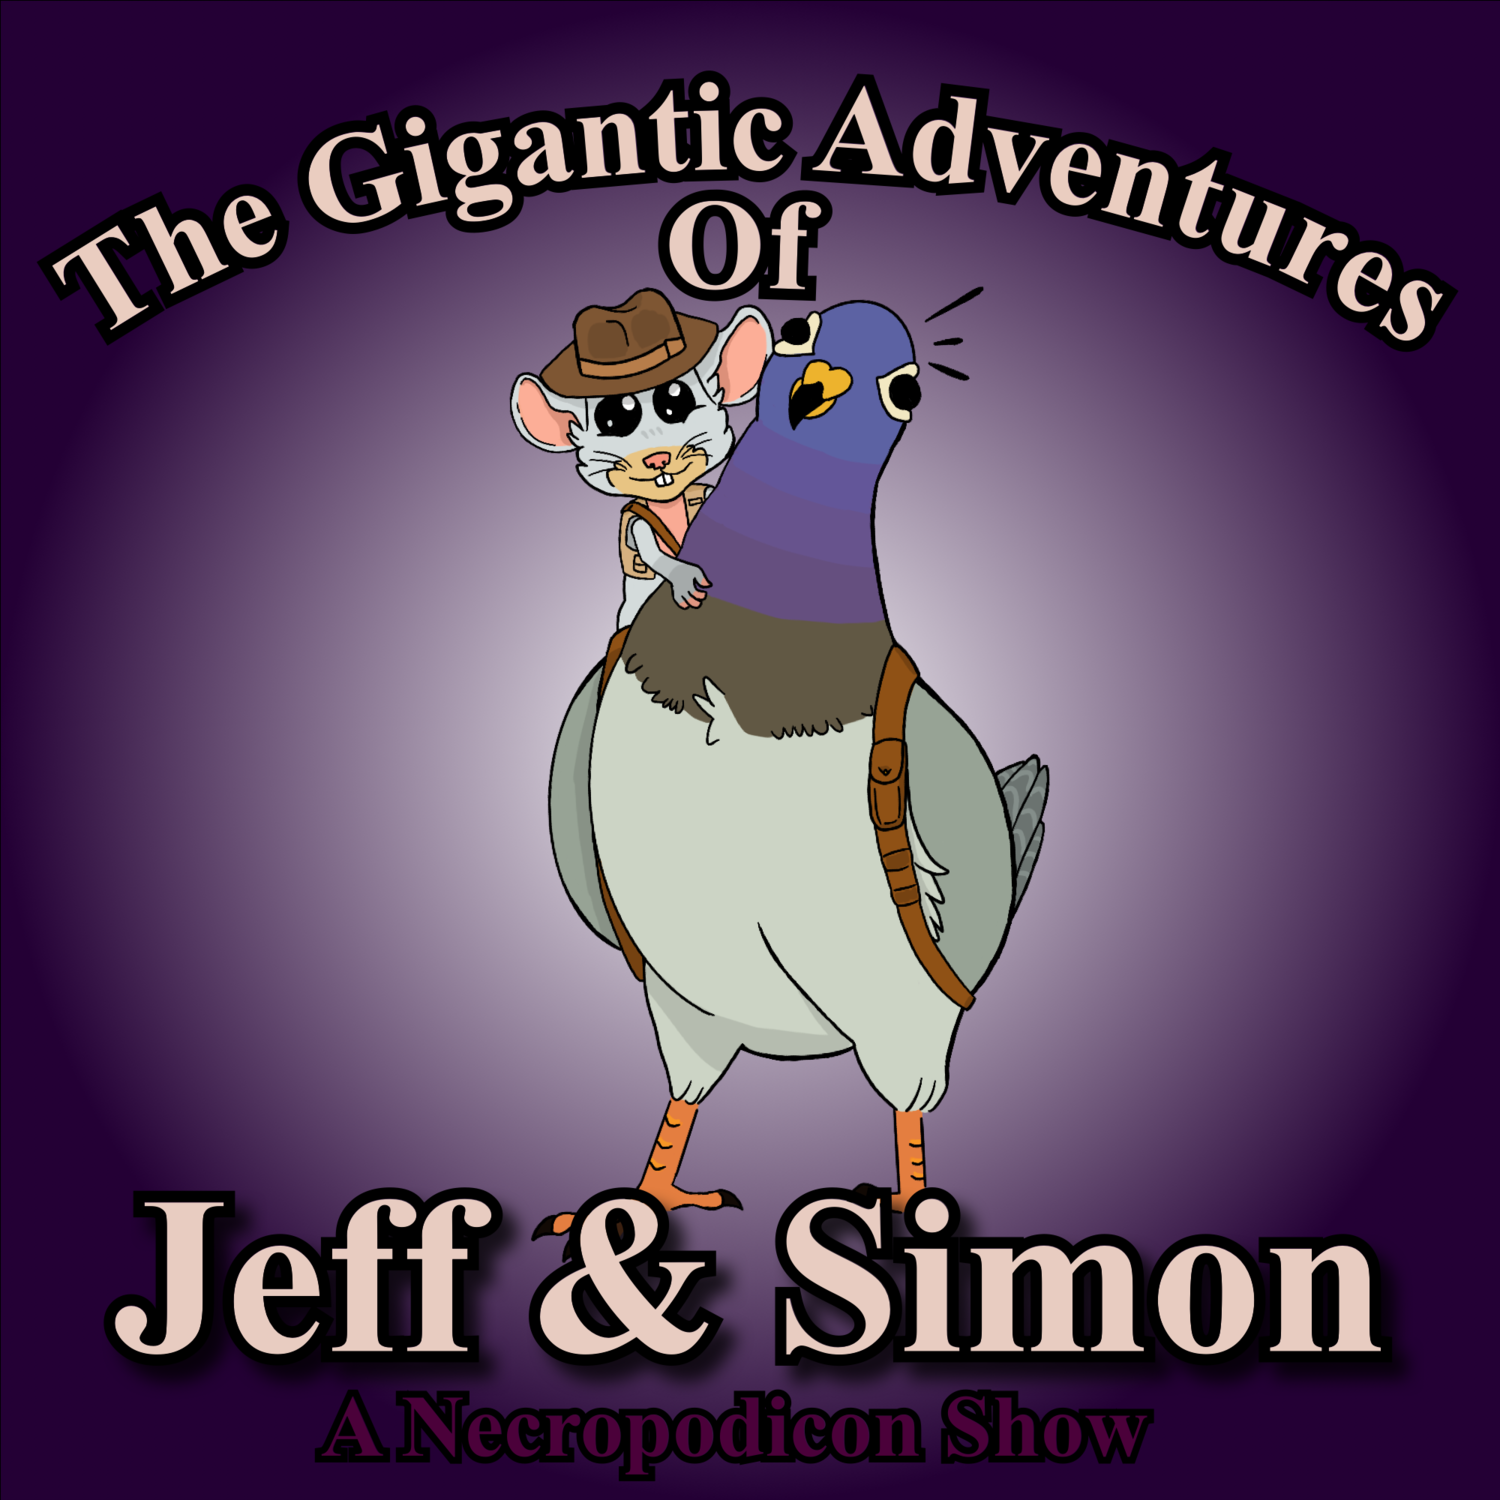 The Gigantic Adventures of Jeff and Simon